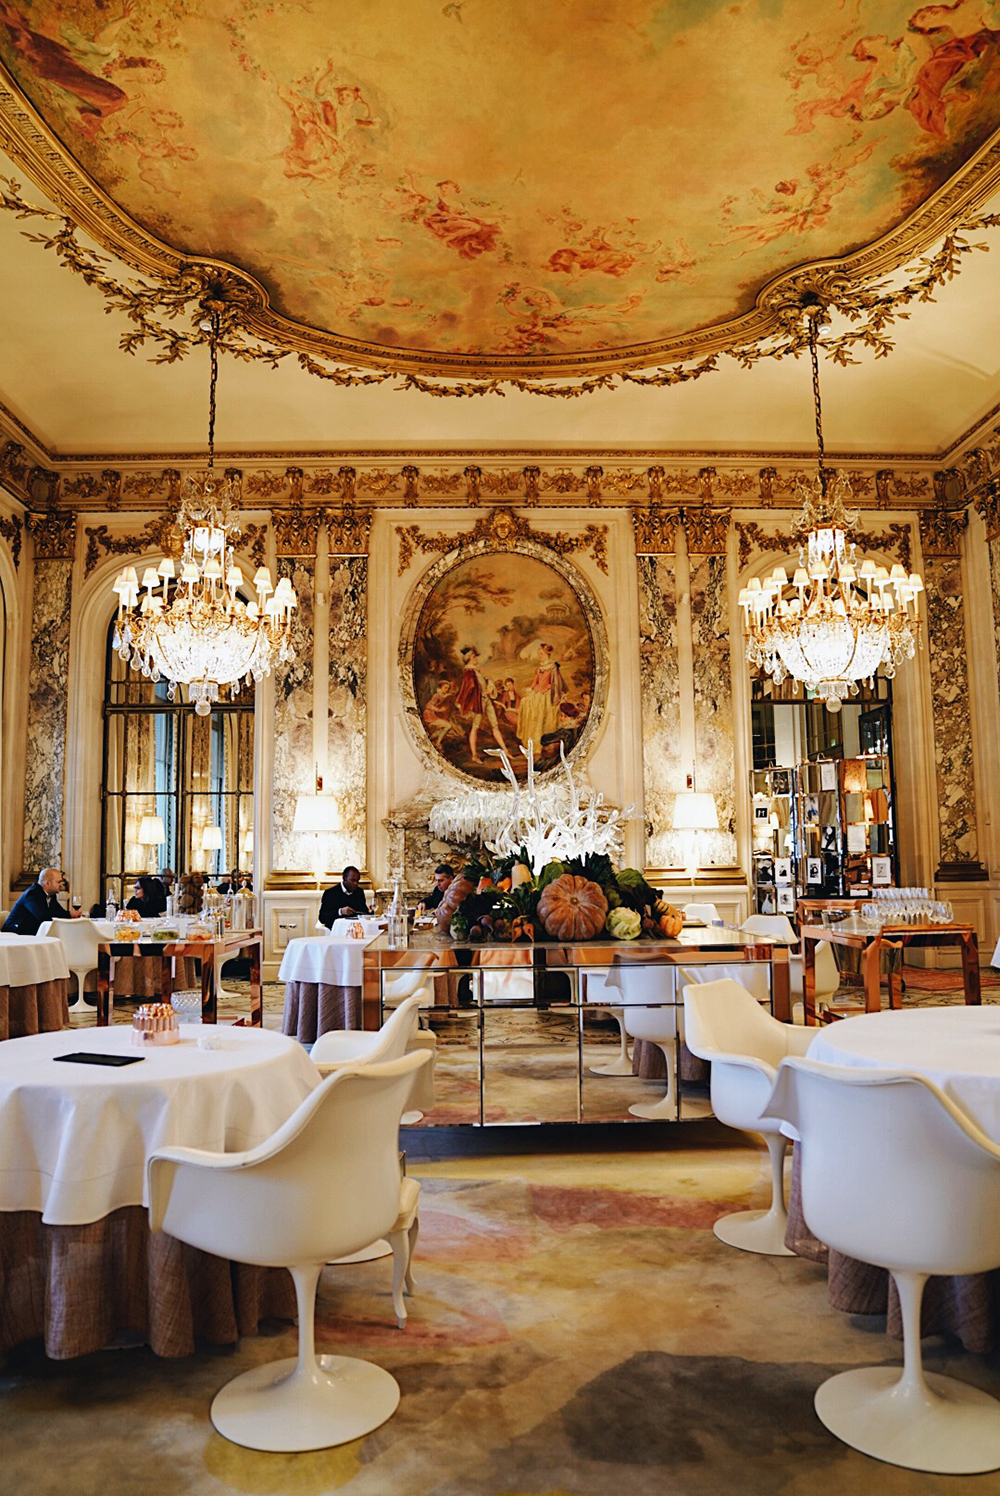 Lunch at  Restaurant Le Meurice Alain Ducasse